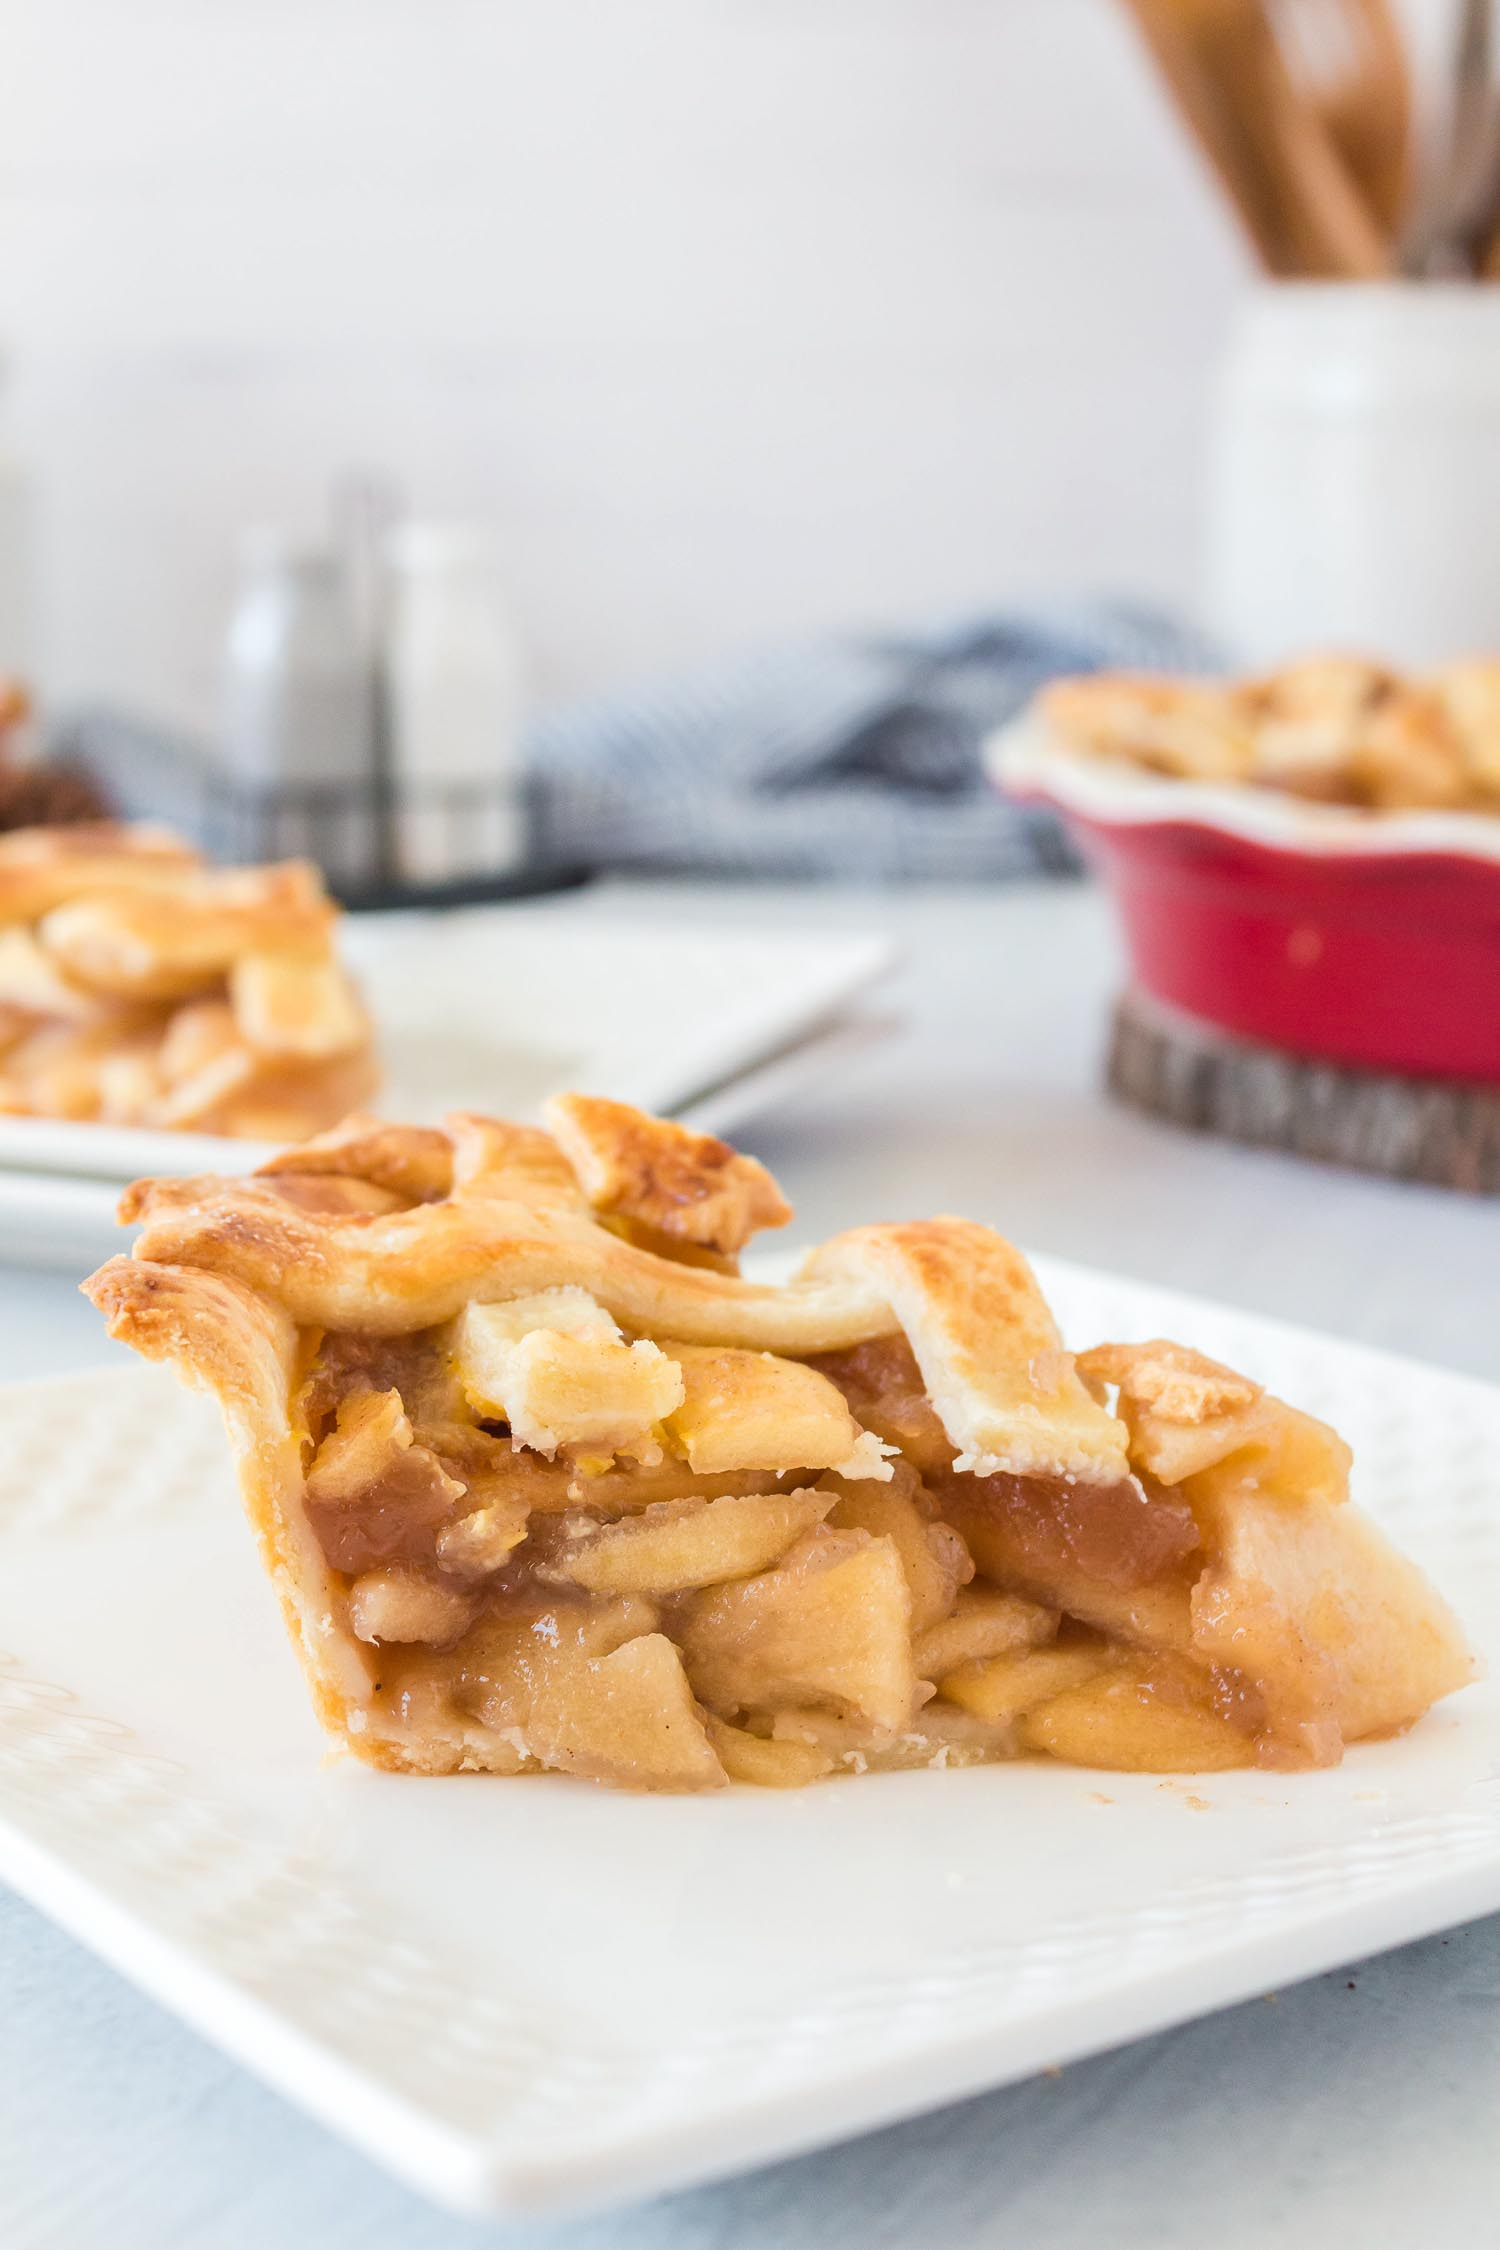 A slice of homemade apple pie on a white plate with apple pie in the background.